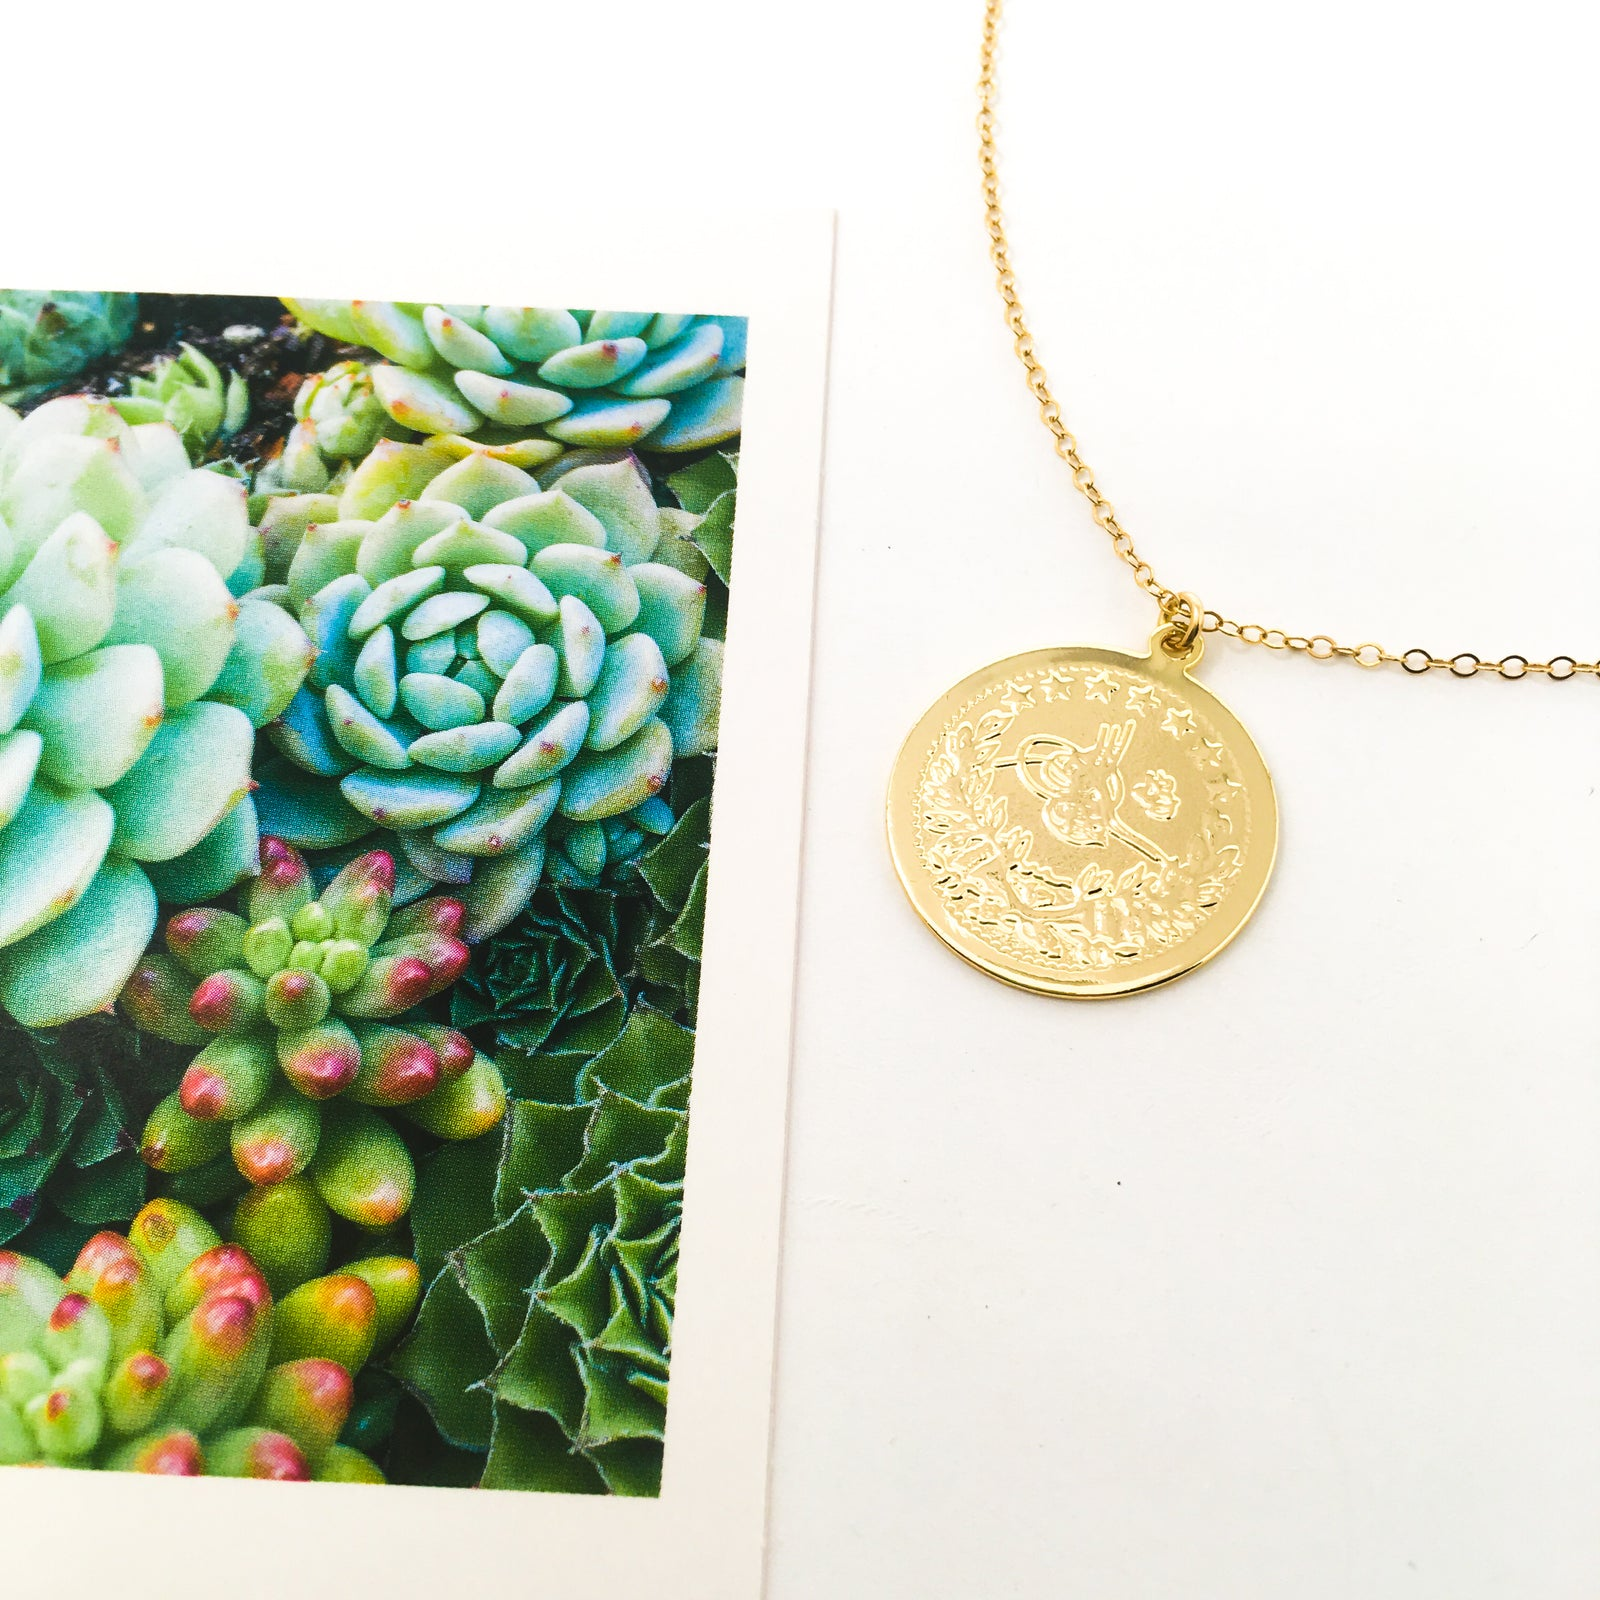 DOUBLE-SIDED COIN NECKLACES | 14K GOLD-FILLED